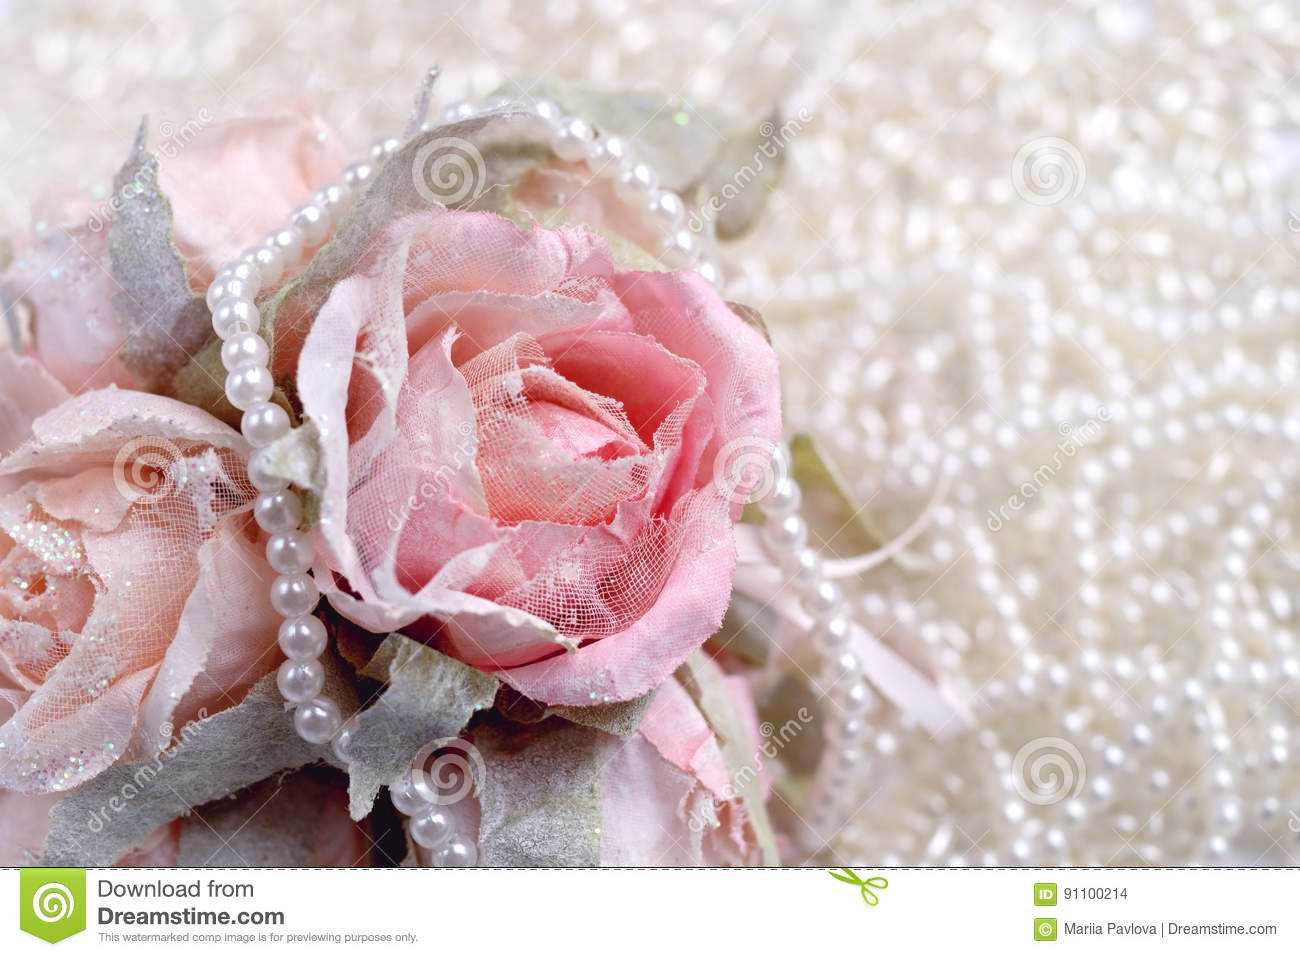 Pictures of pink roses and pearls